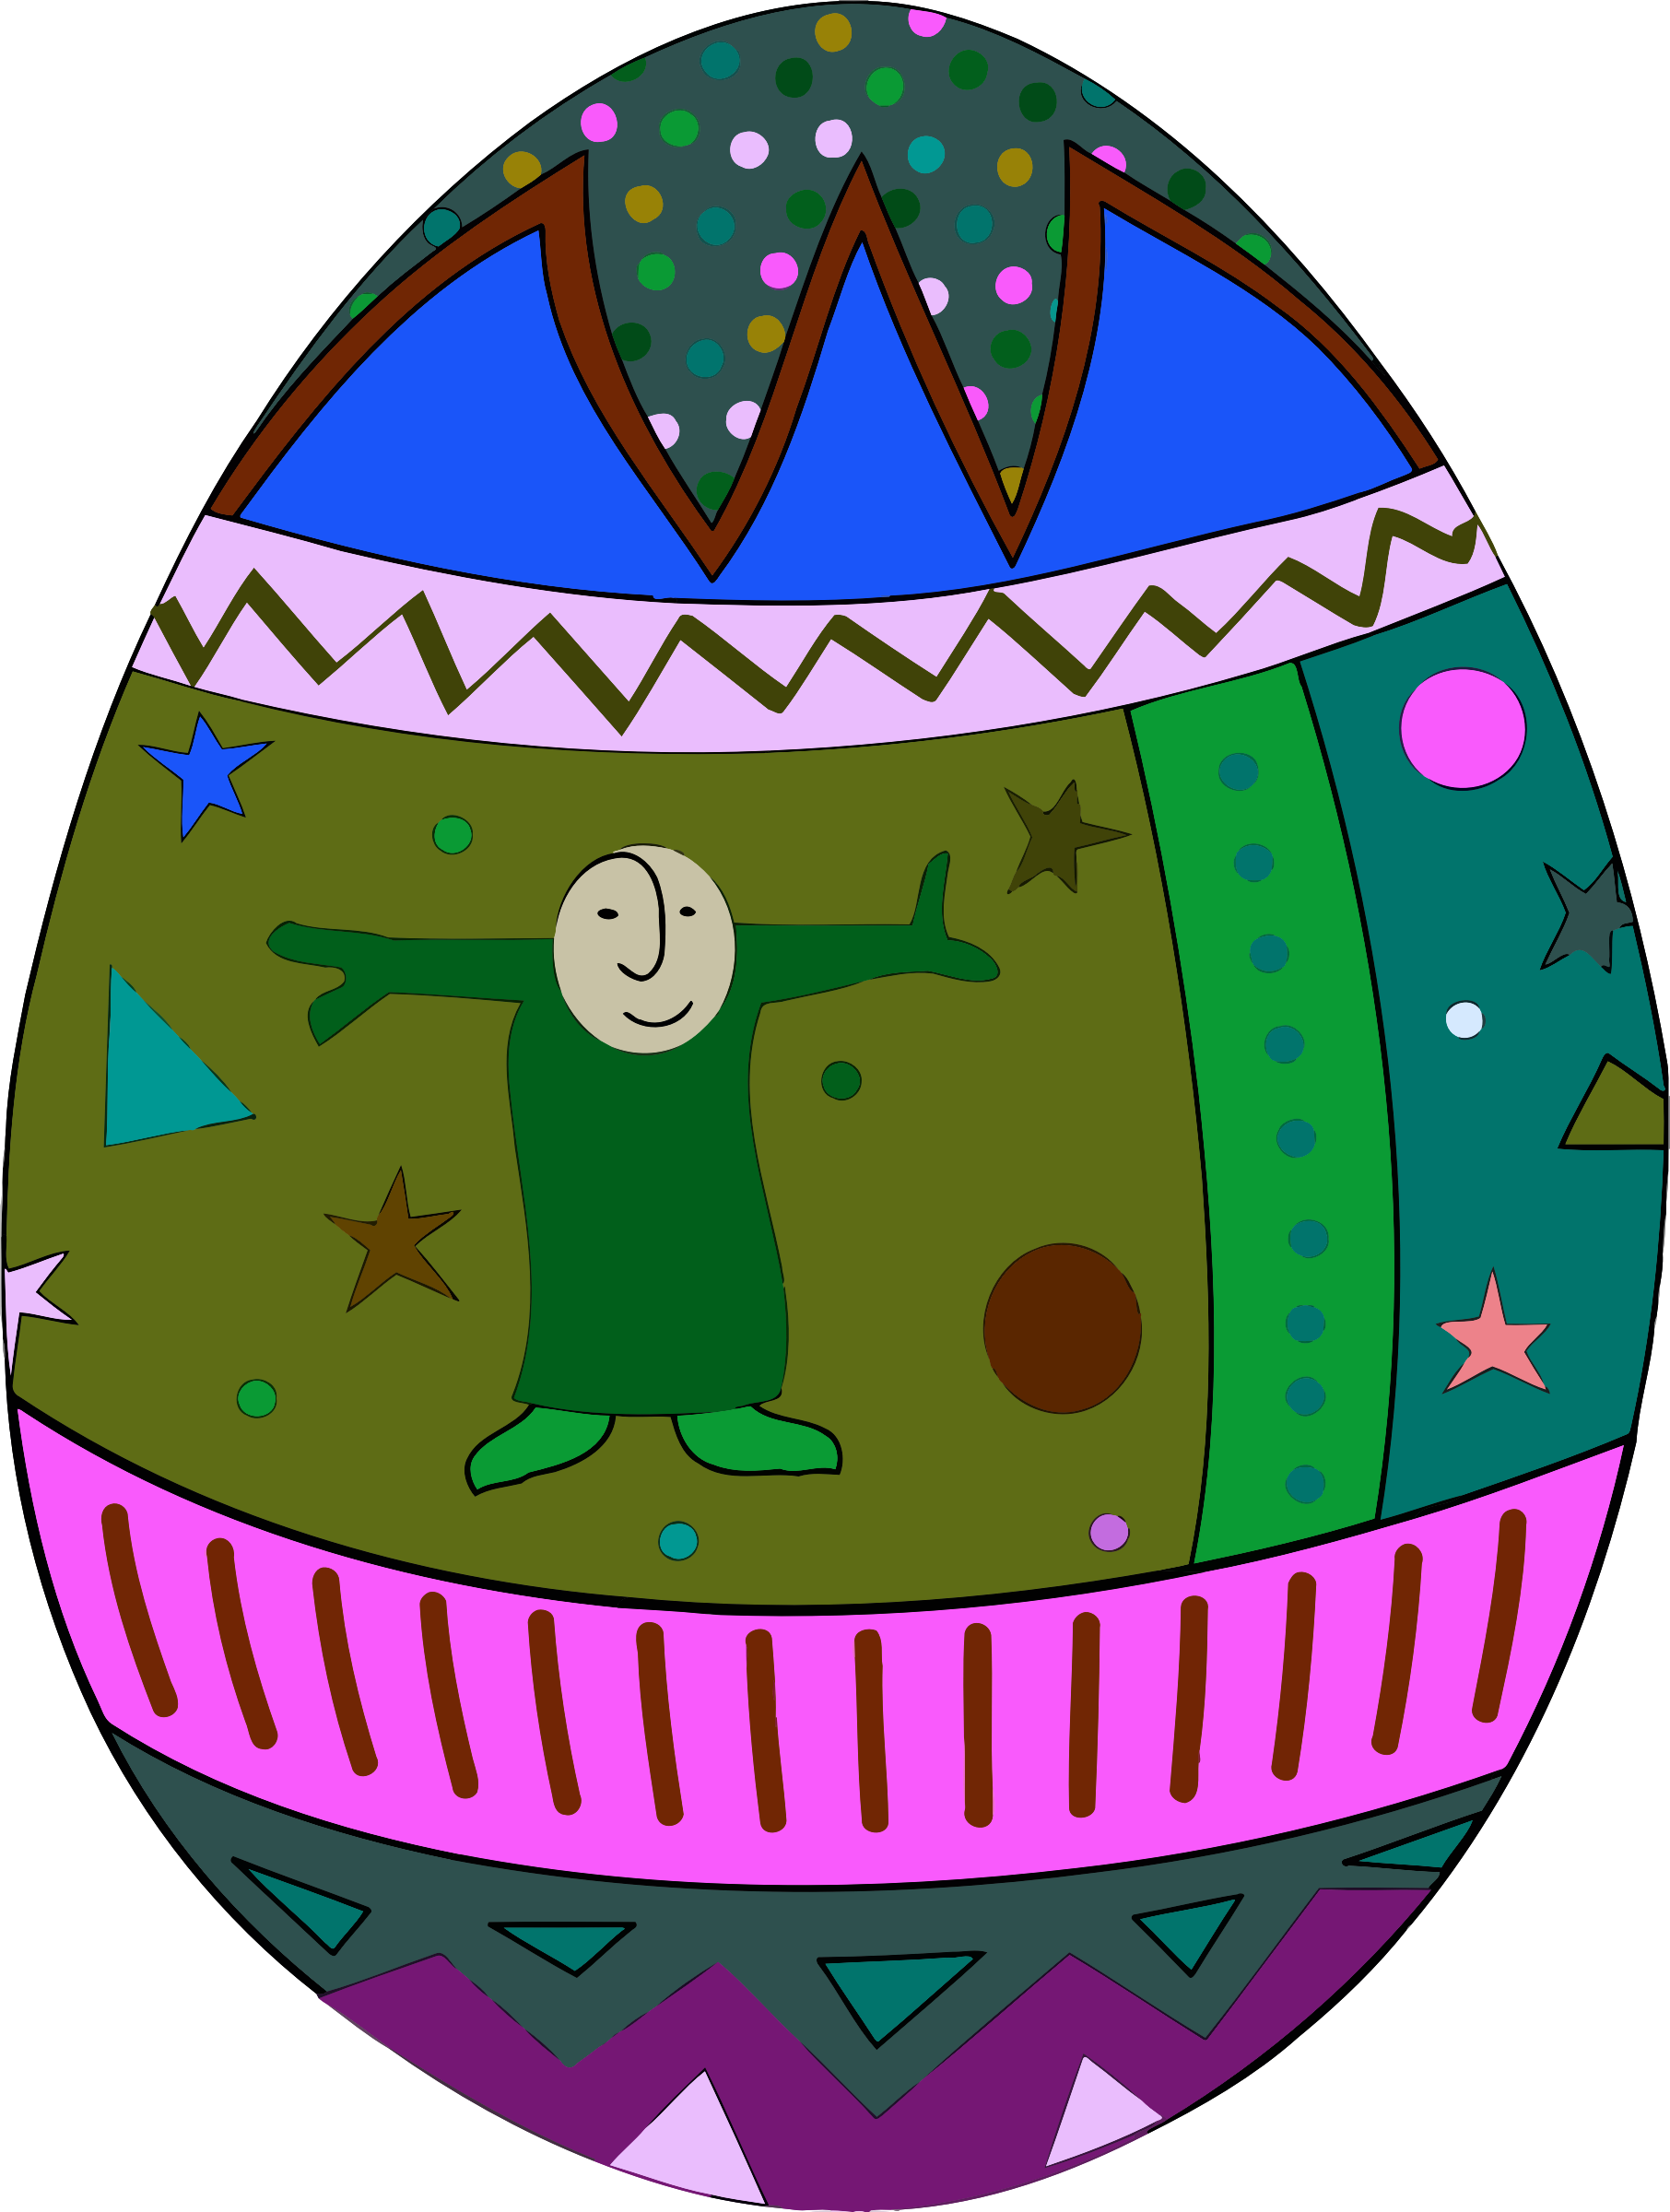 Decorative egg 9 by Firkin